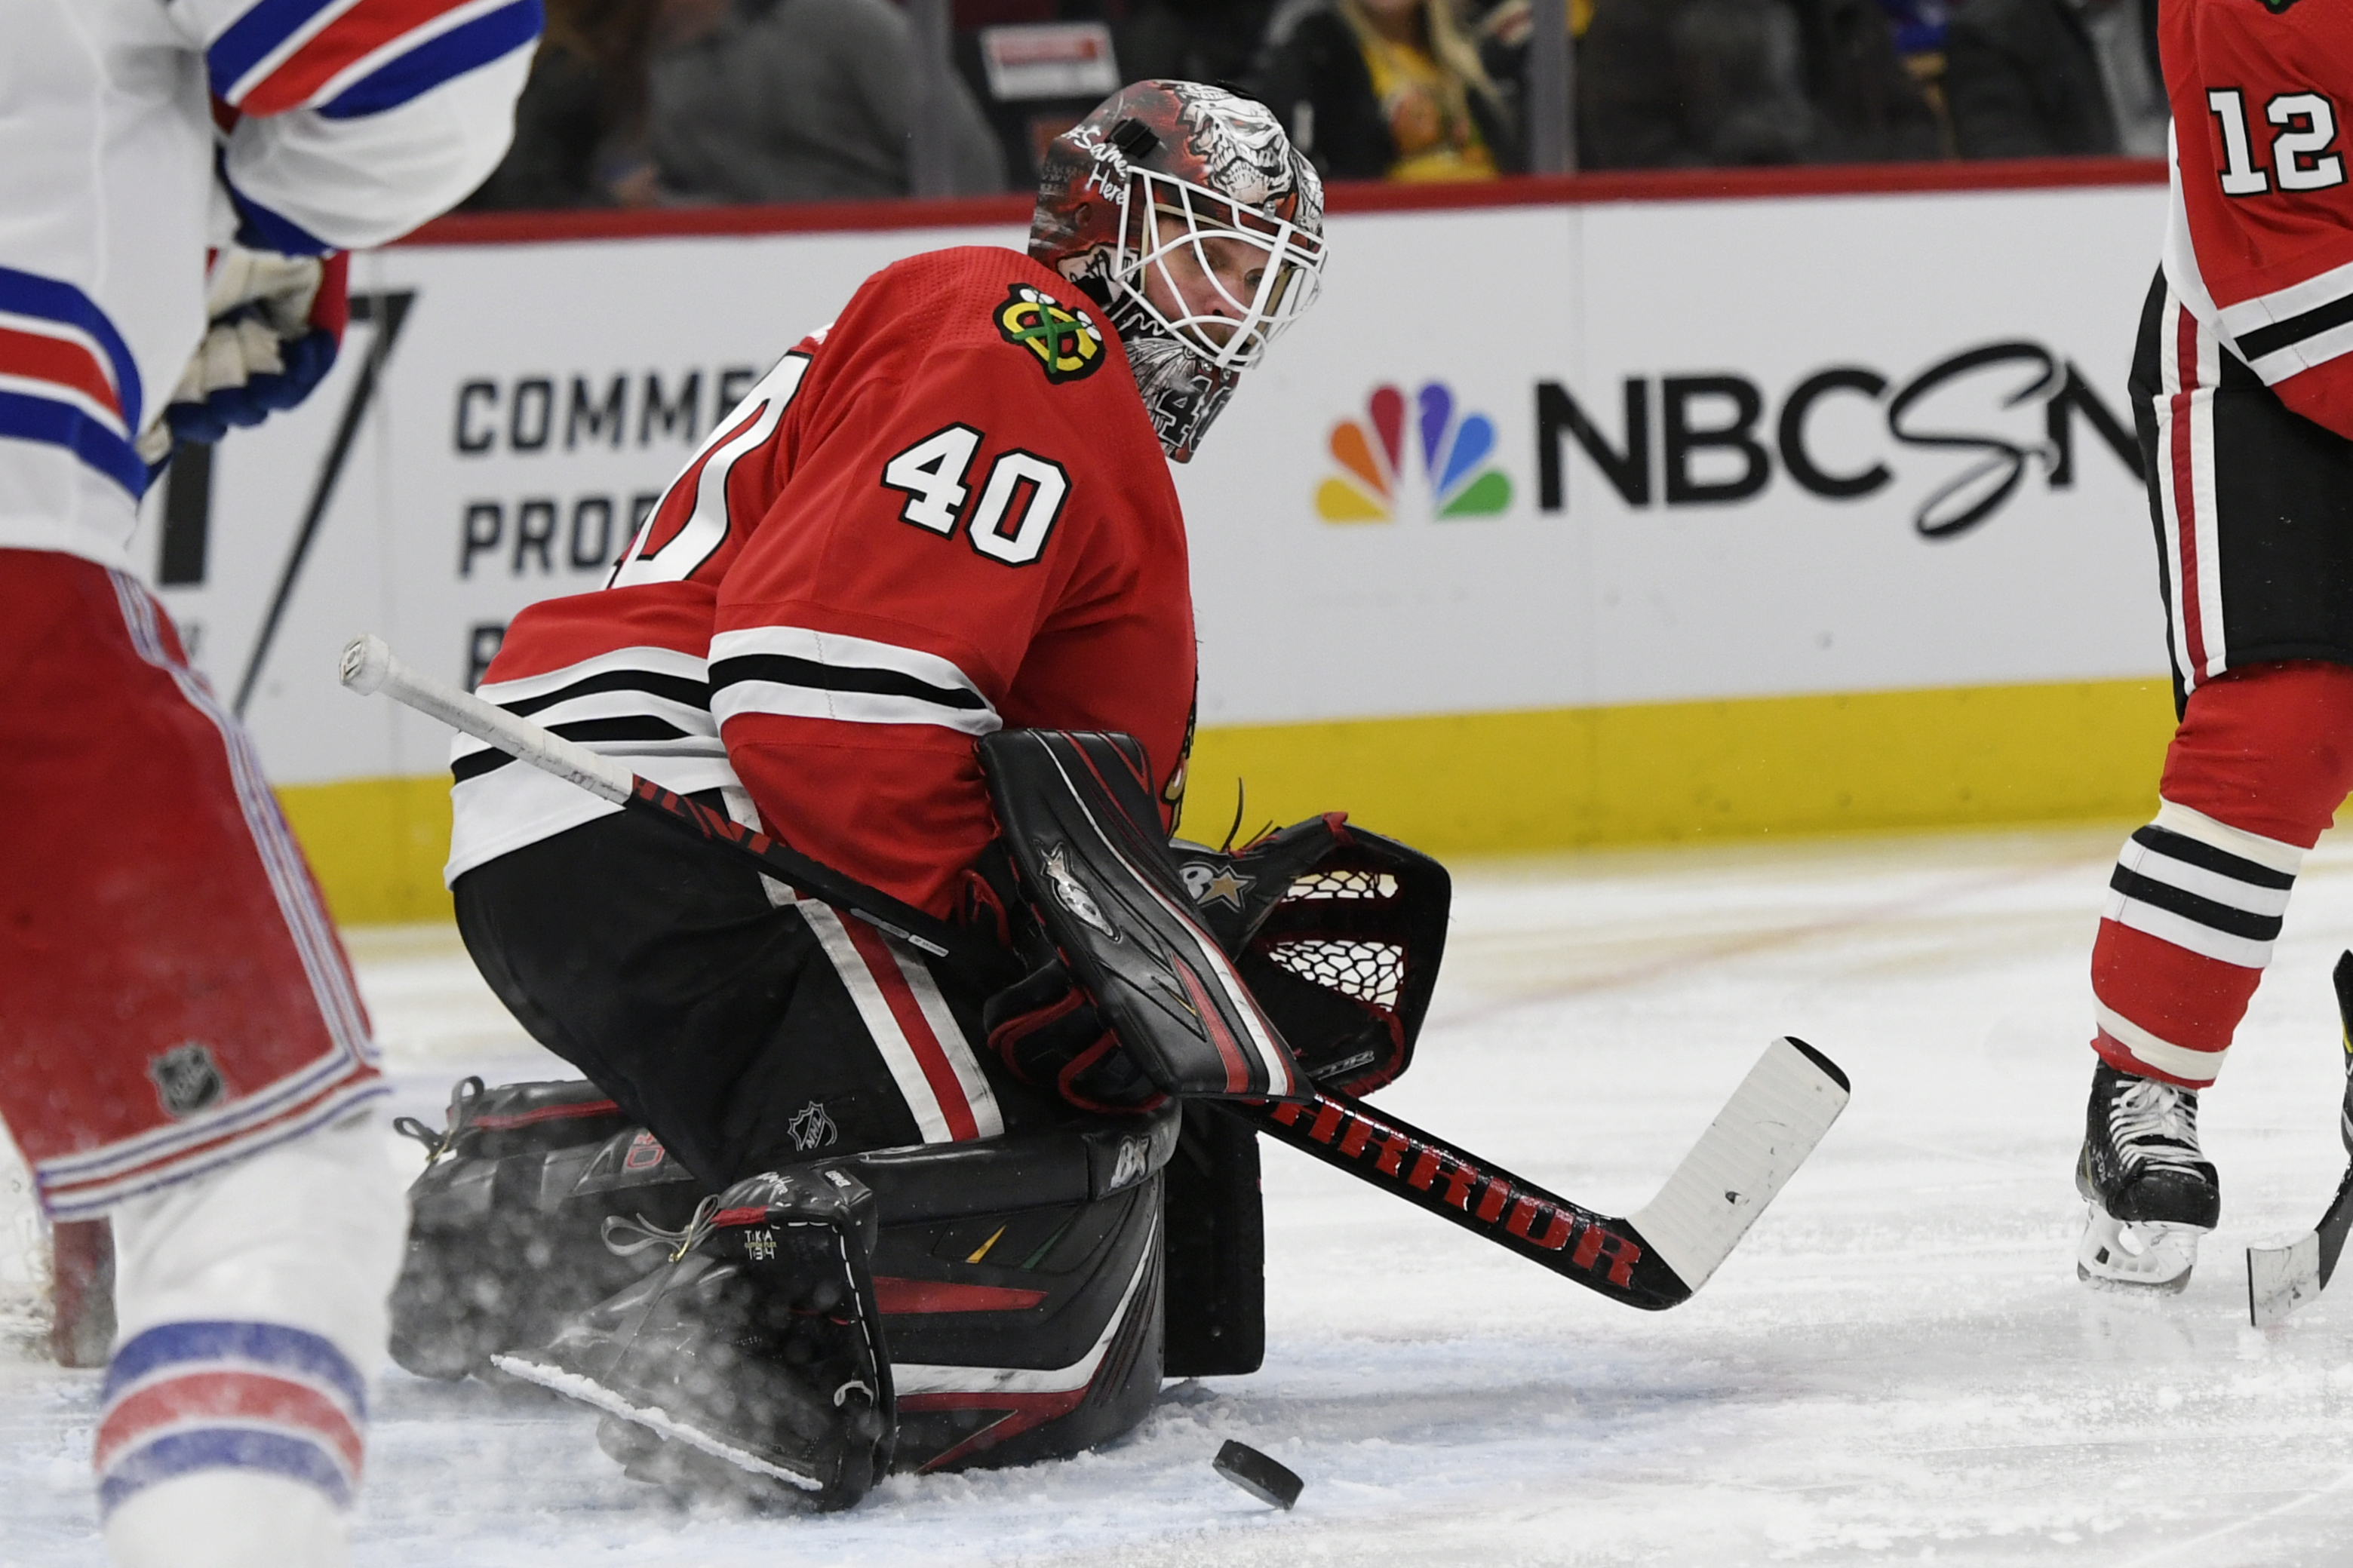 Robin Lehner made 35 saves but allowed six goals Wednesday against the Rangers.